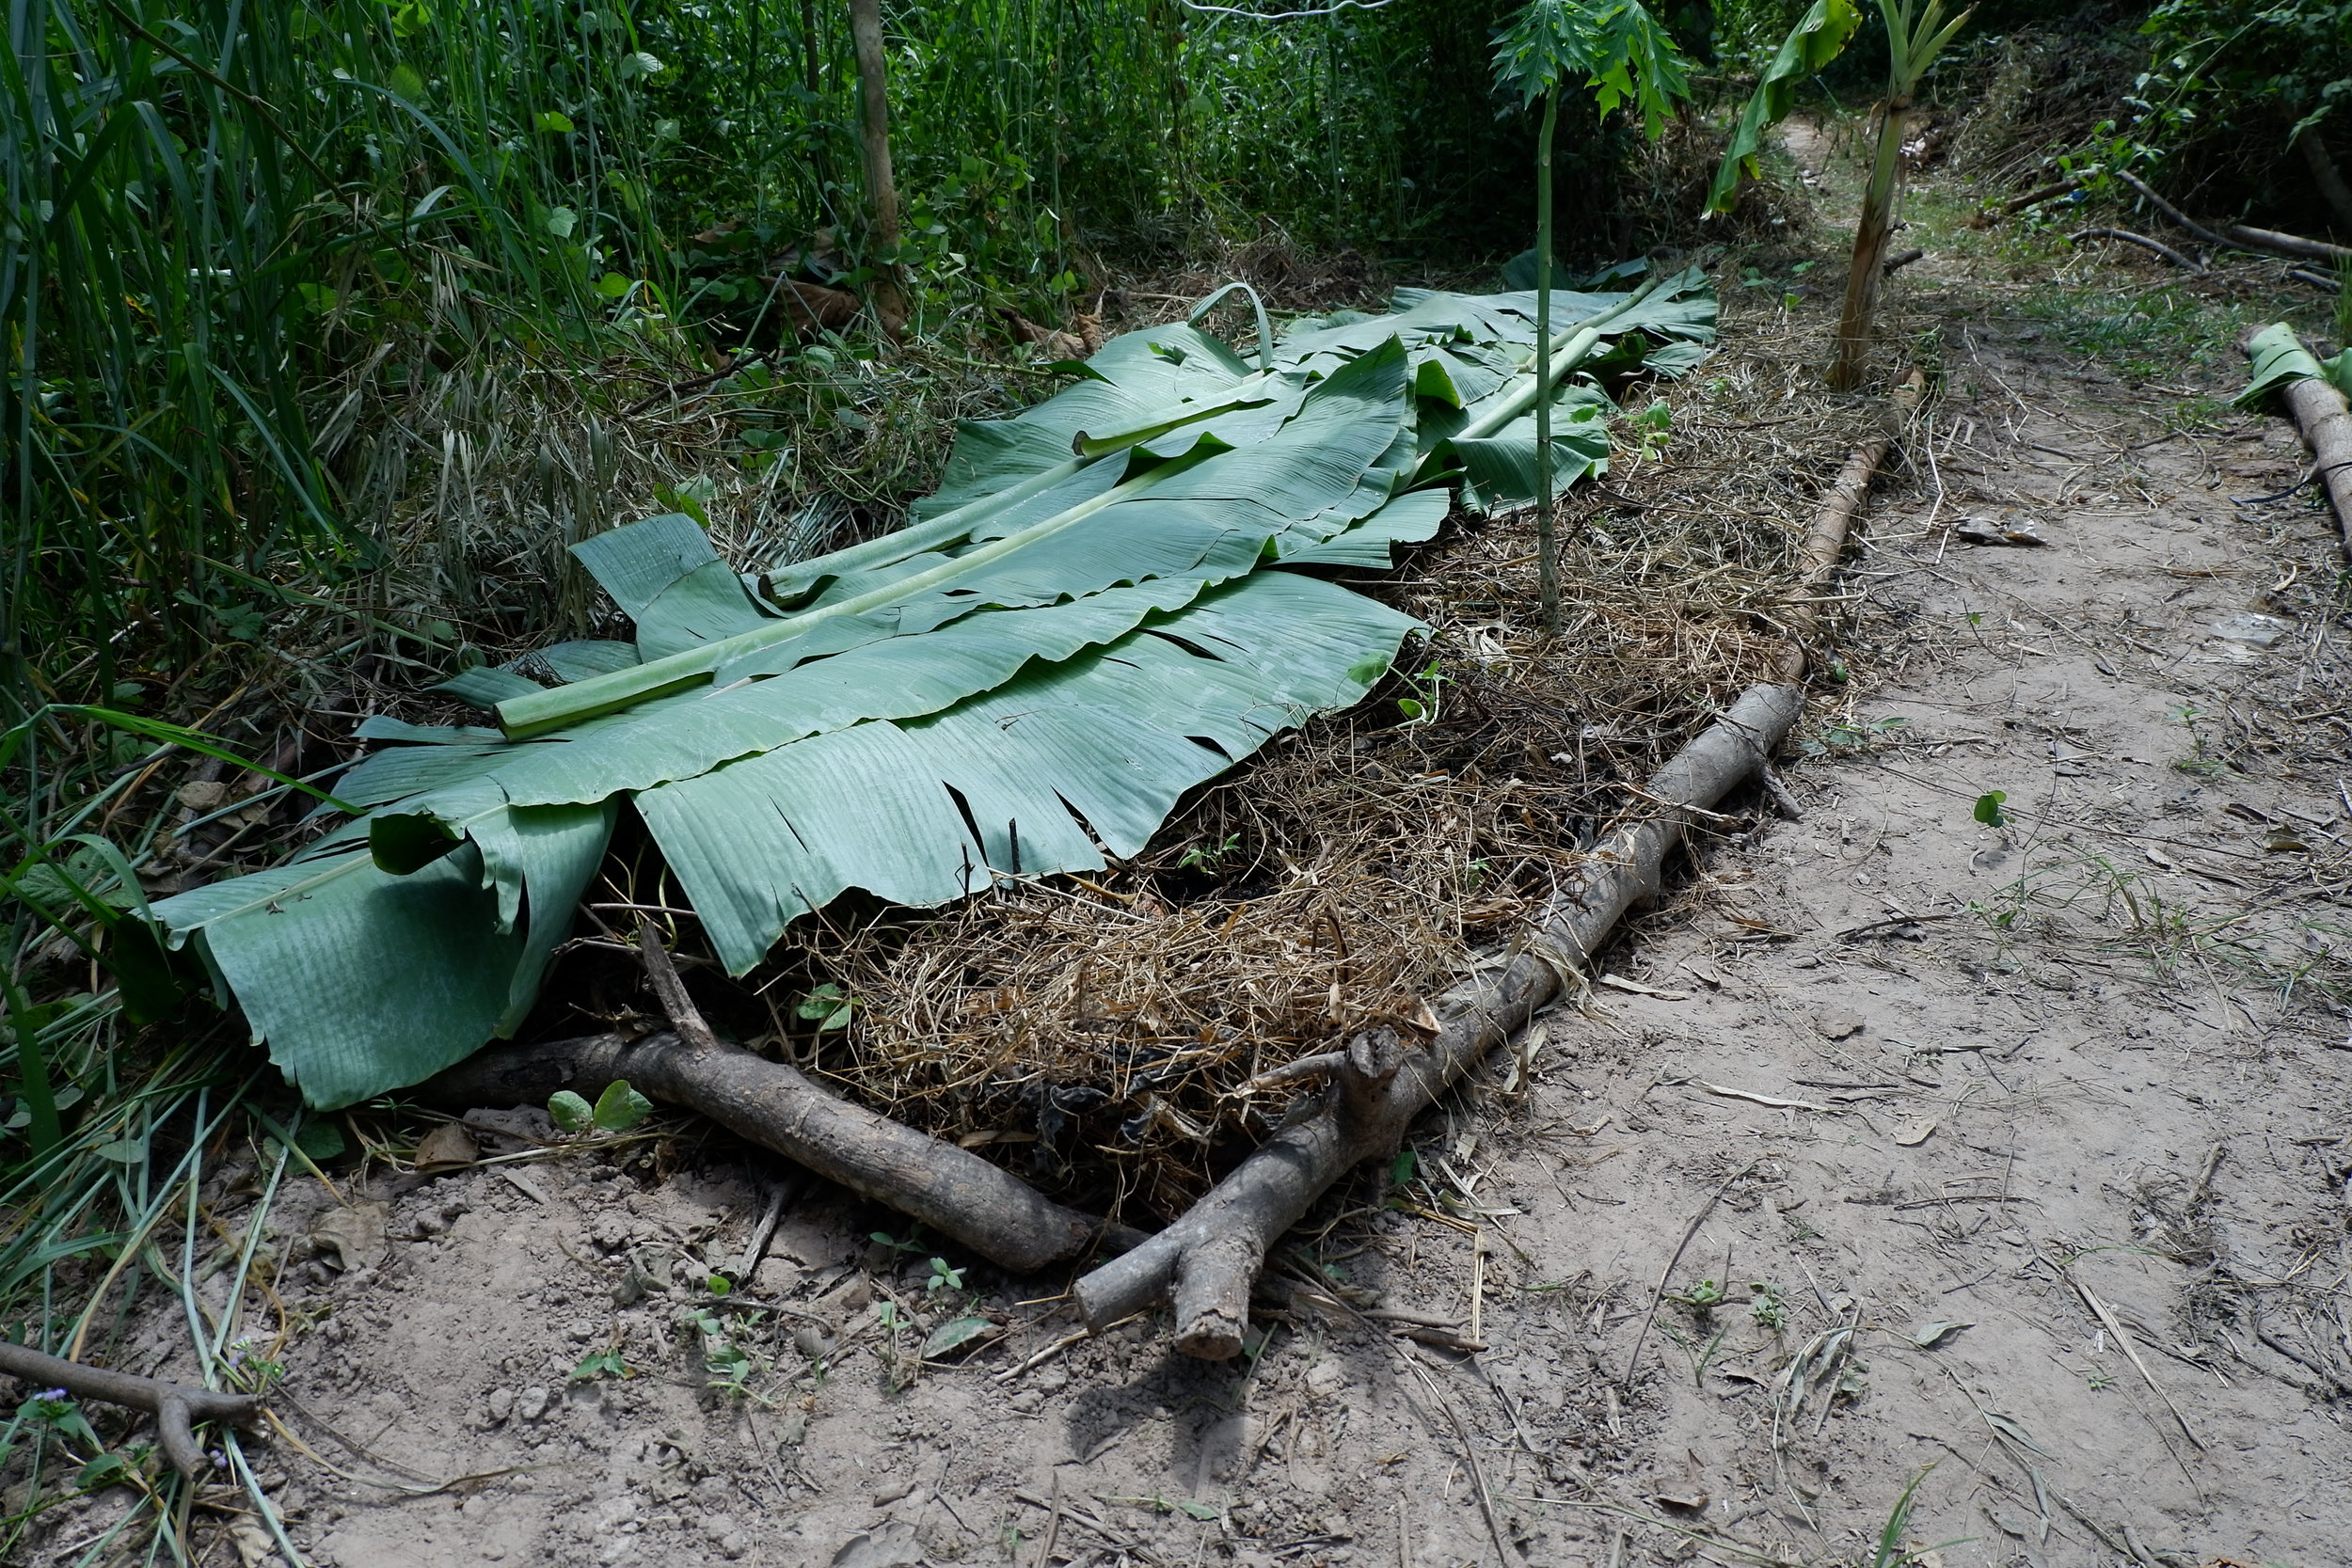 No-dig gardens help to enrich the soil even under poor conditions.